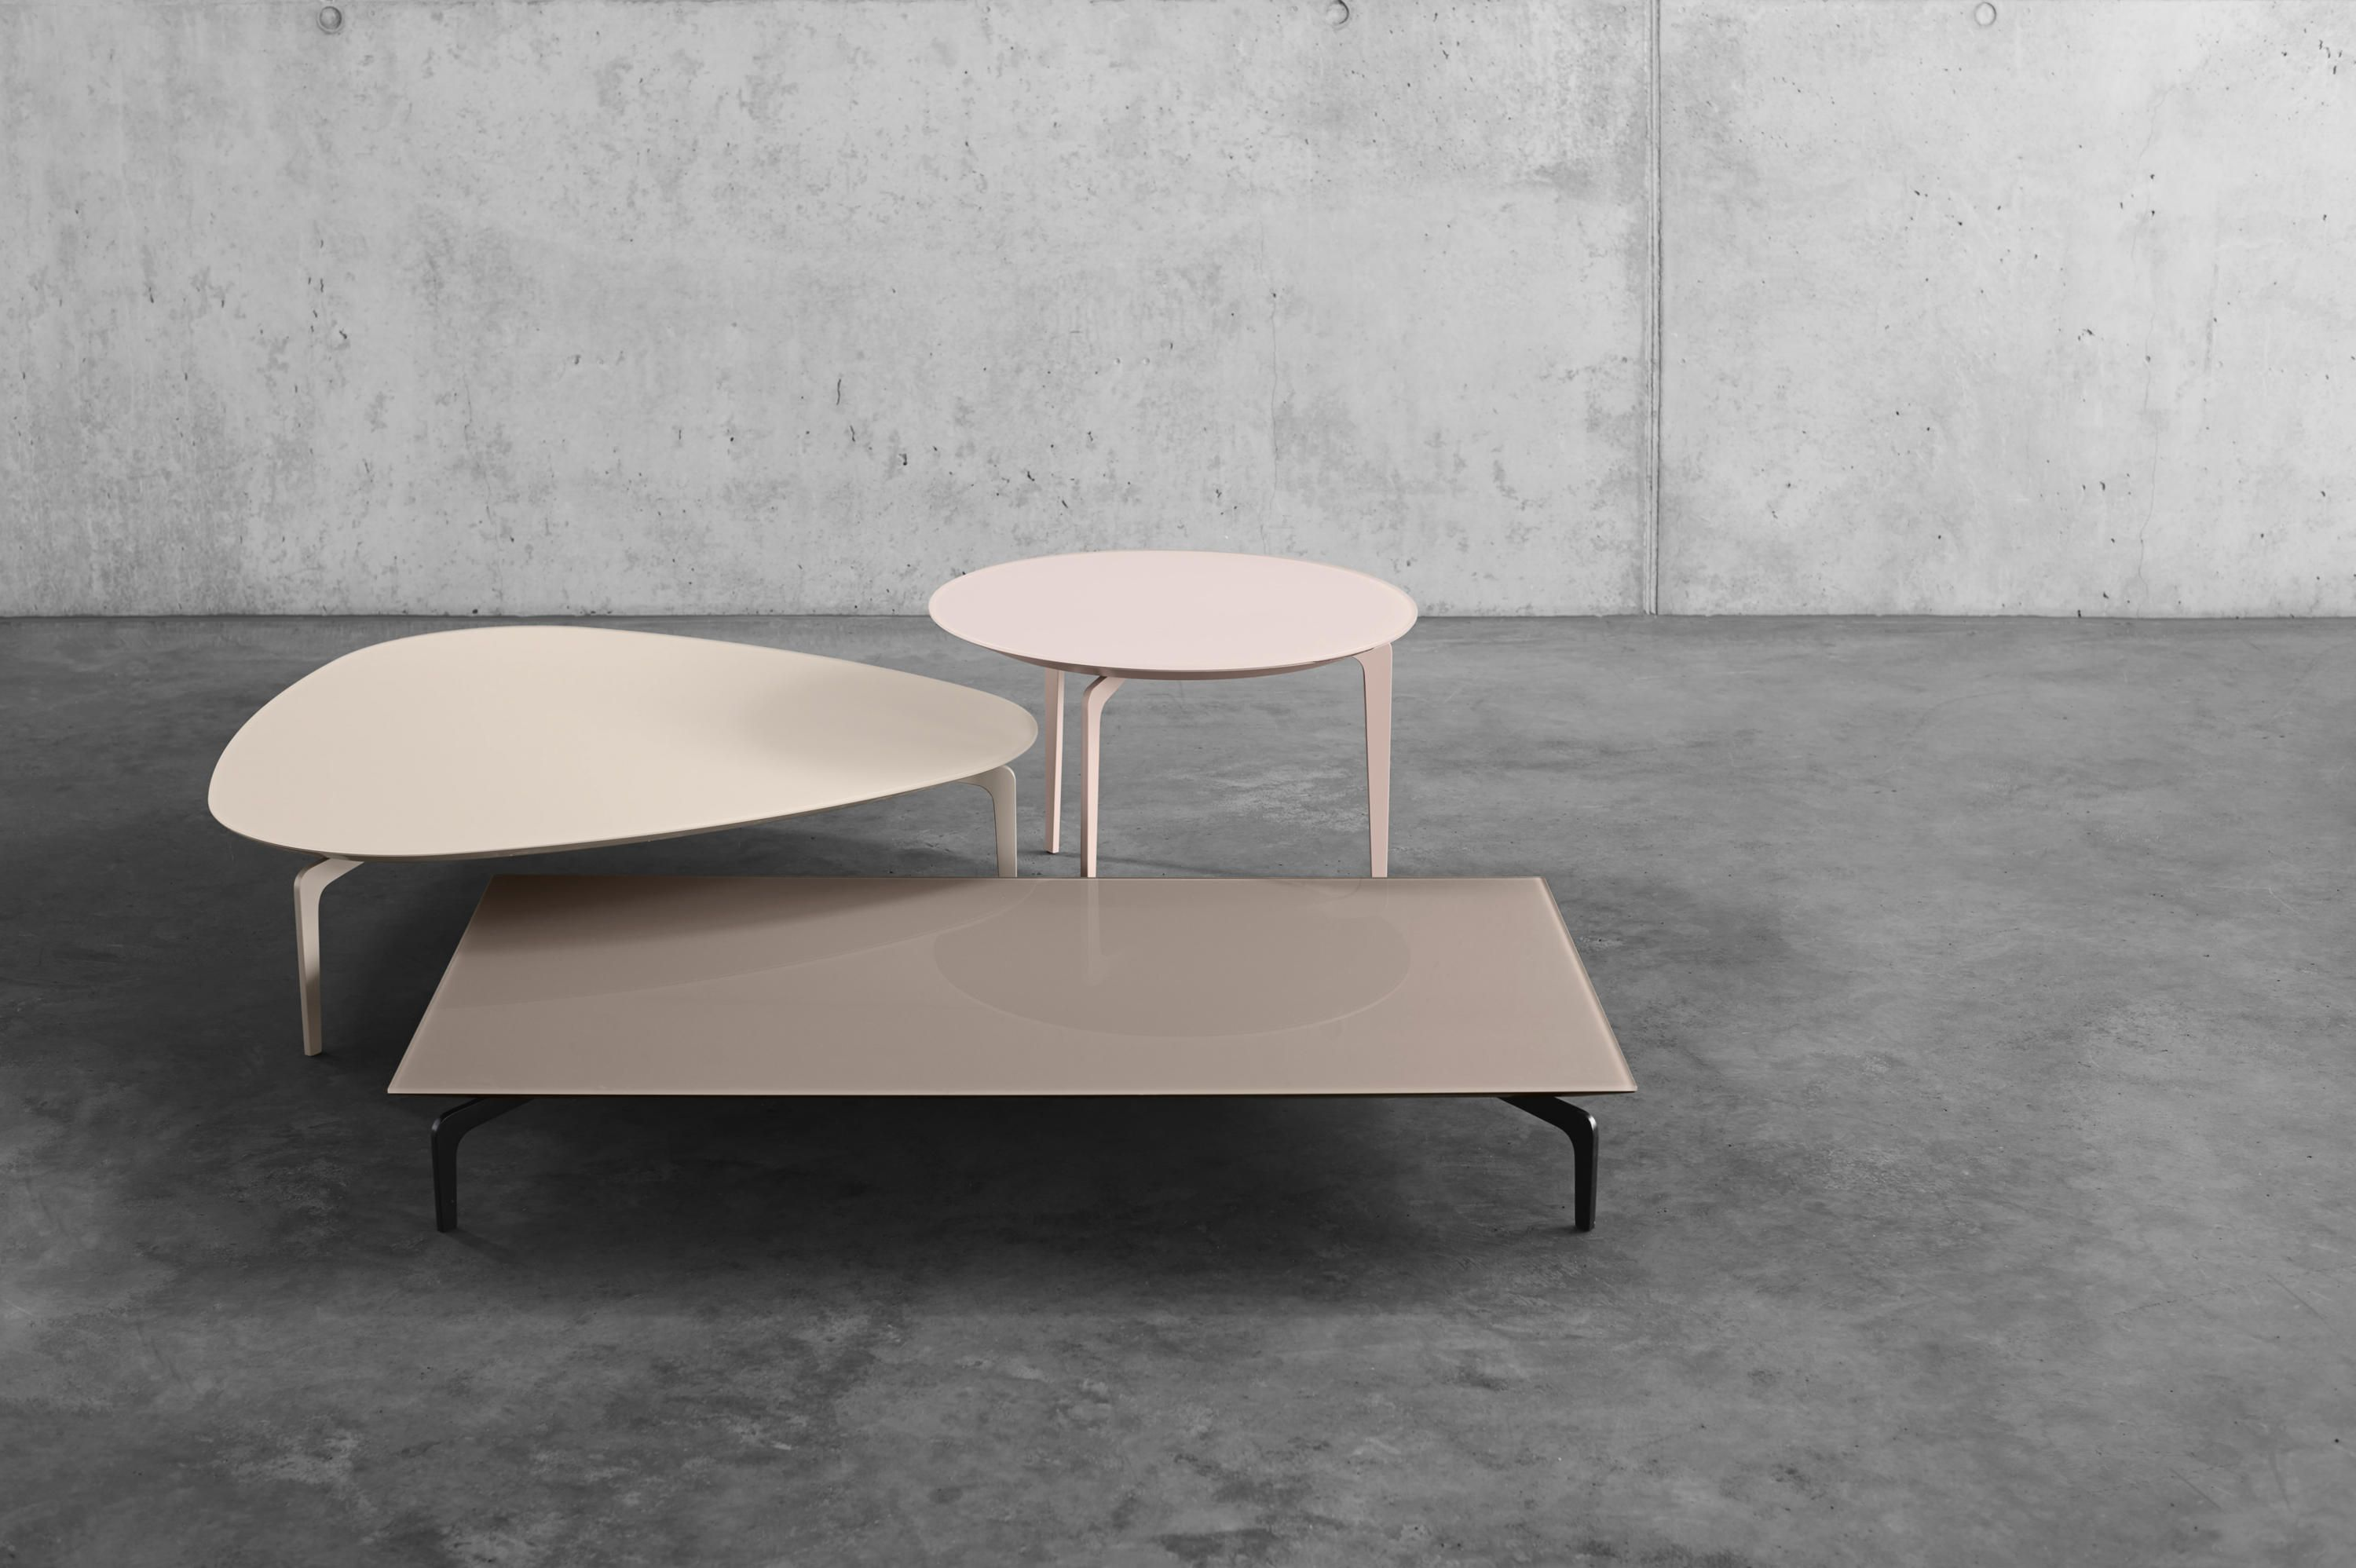 Kettnaker Solo Couchtisch Solo T2 15 002 01 Designer Coffee Tables From Kettnaker All